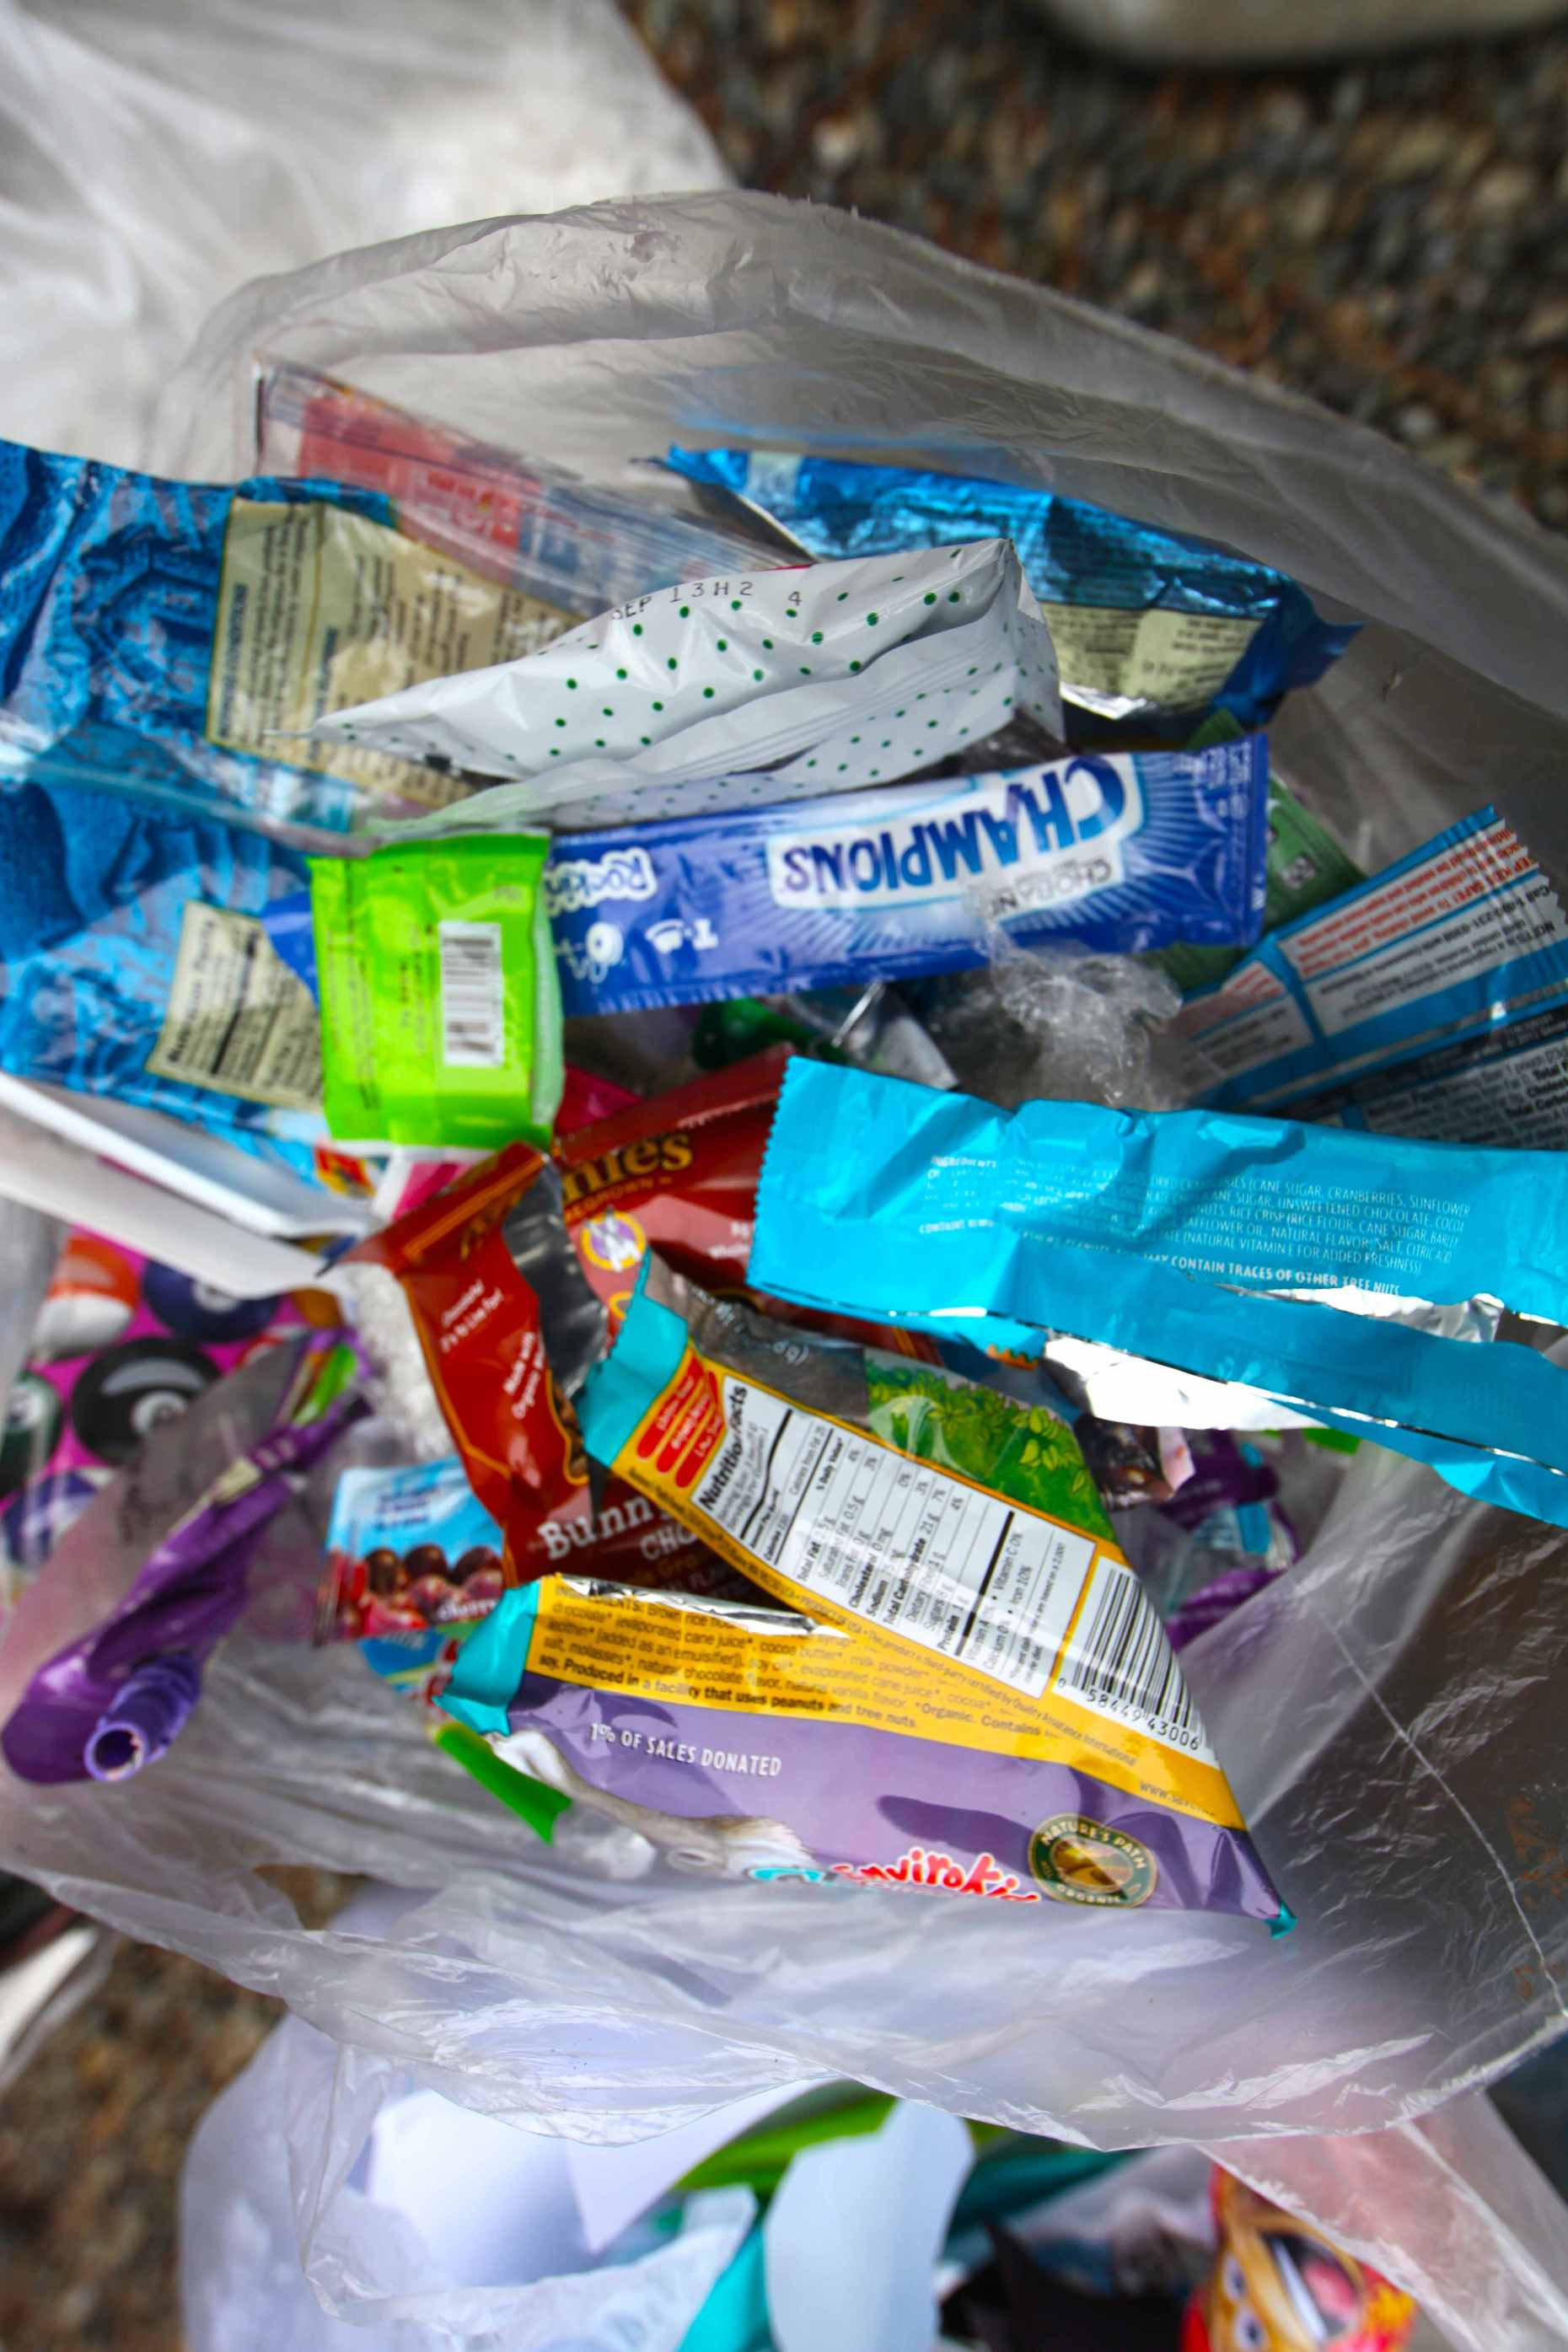 Single Most Common Item in Landfill Trash = Snack Wrappers.